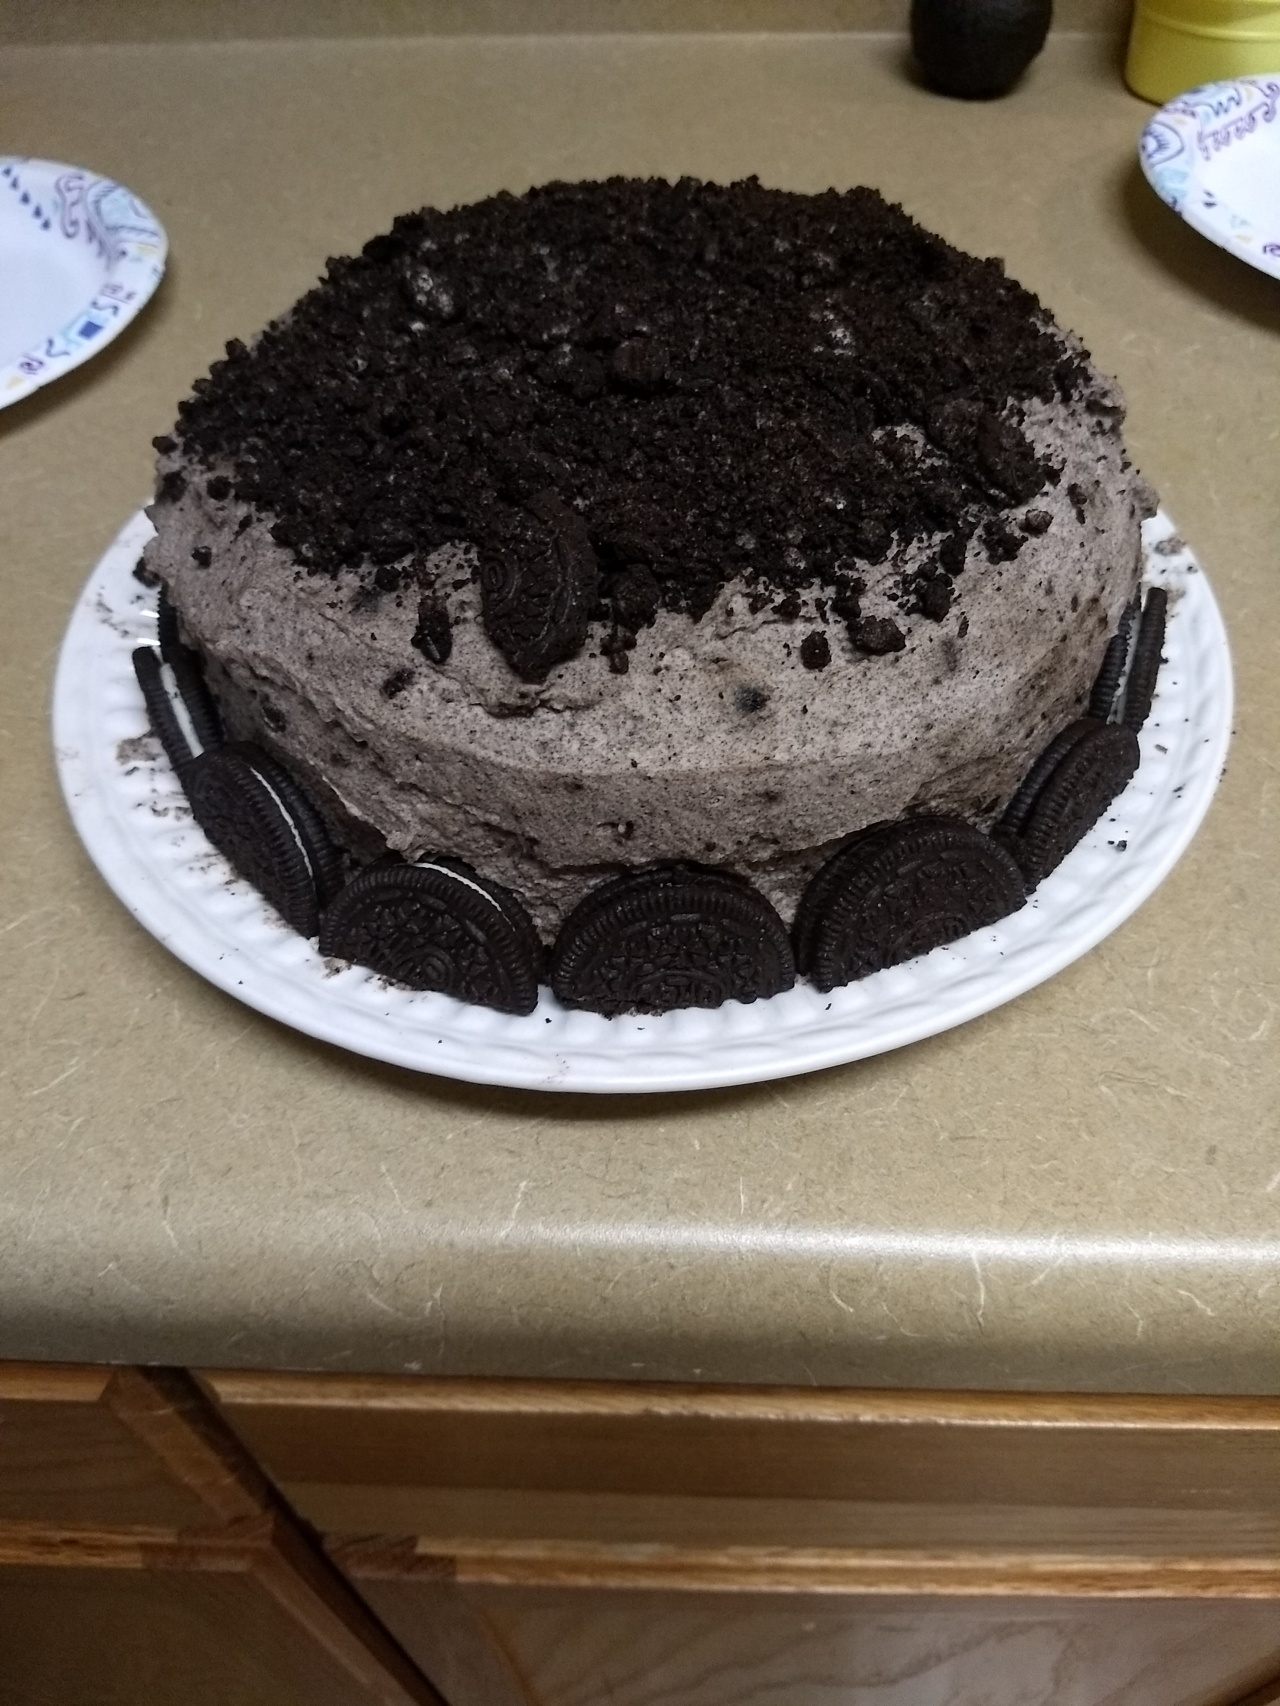 Oreo Cake on a Rainy Day